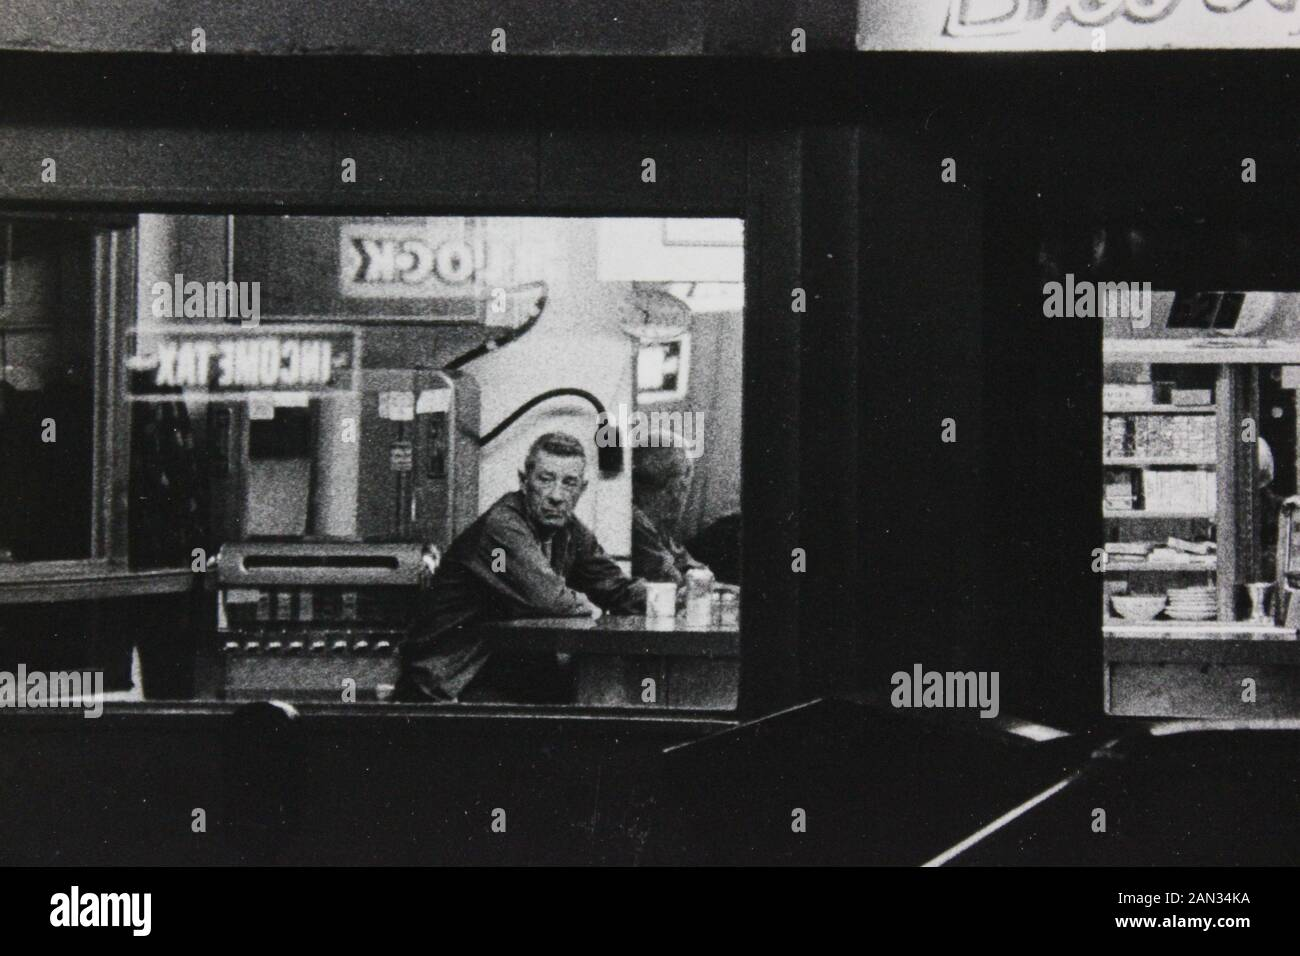 Fine Seventies Black And White Extreme Photography Of A Late Night Diner Stock Photo Alamy